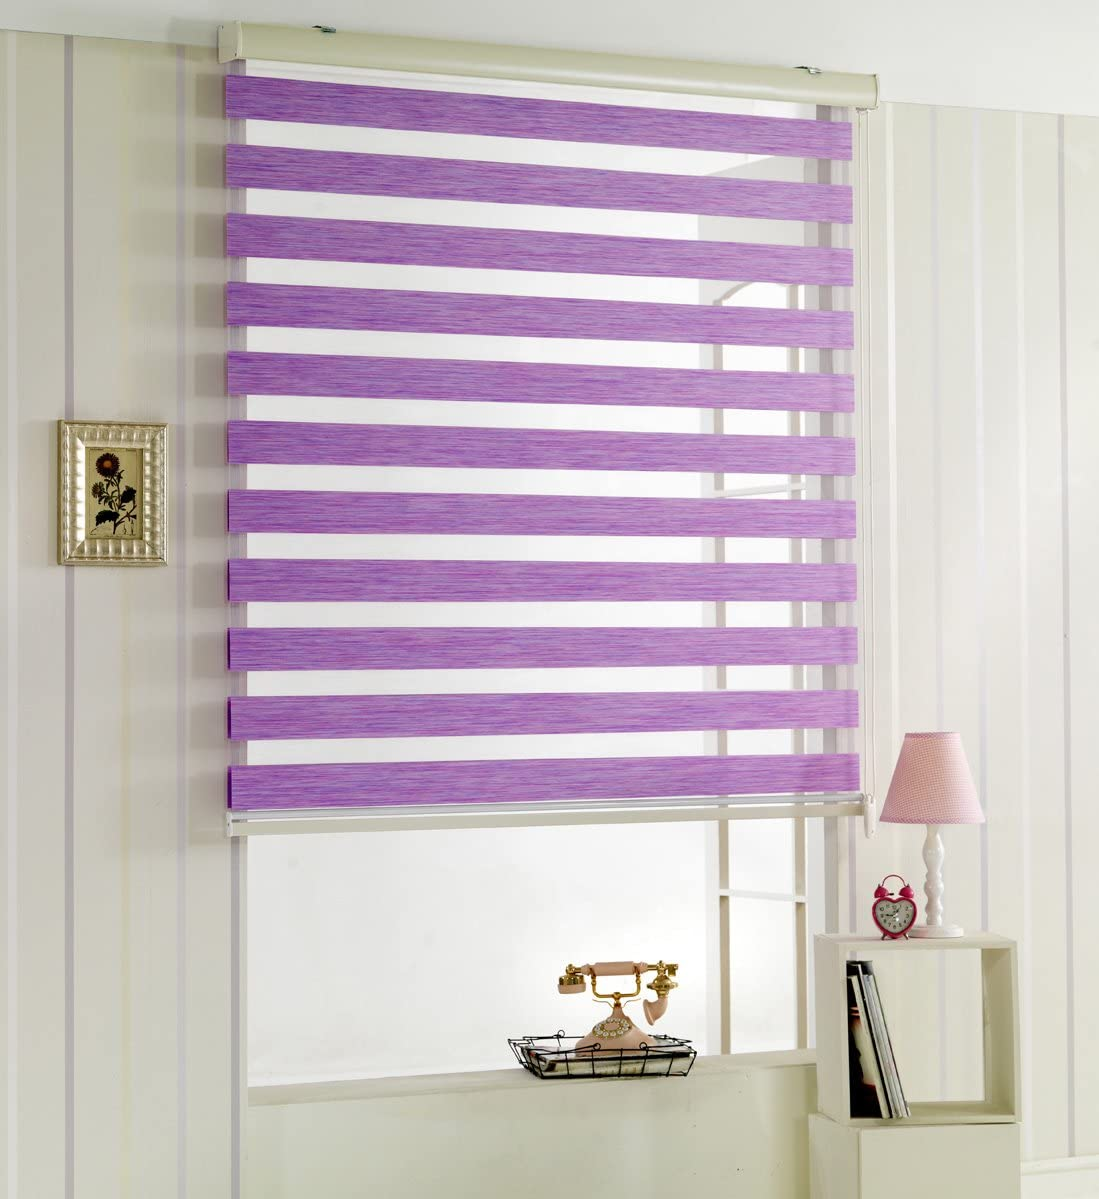 Custom Cut to Size, Winsharp Woodlook 107, Violet, W 24 x H 103 inch Zebra Roller Blinds, Dual Layer Shades, Sheer or Privacy Light Control, Day and Night Window Drapes, 20 to 110 inch wide